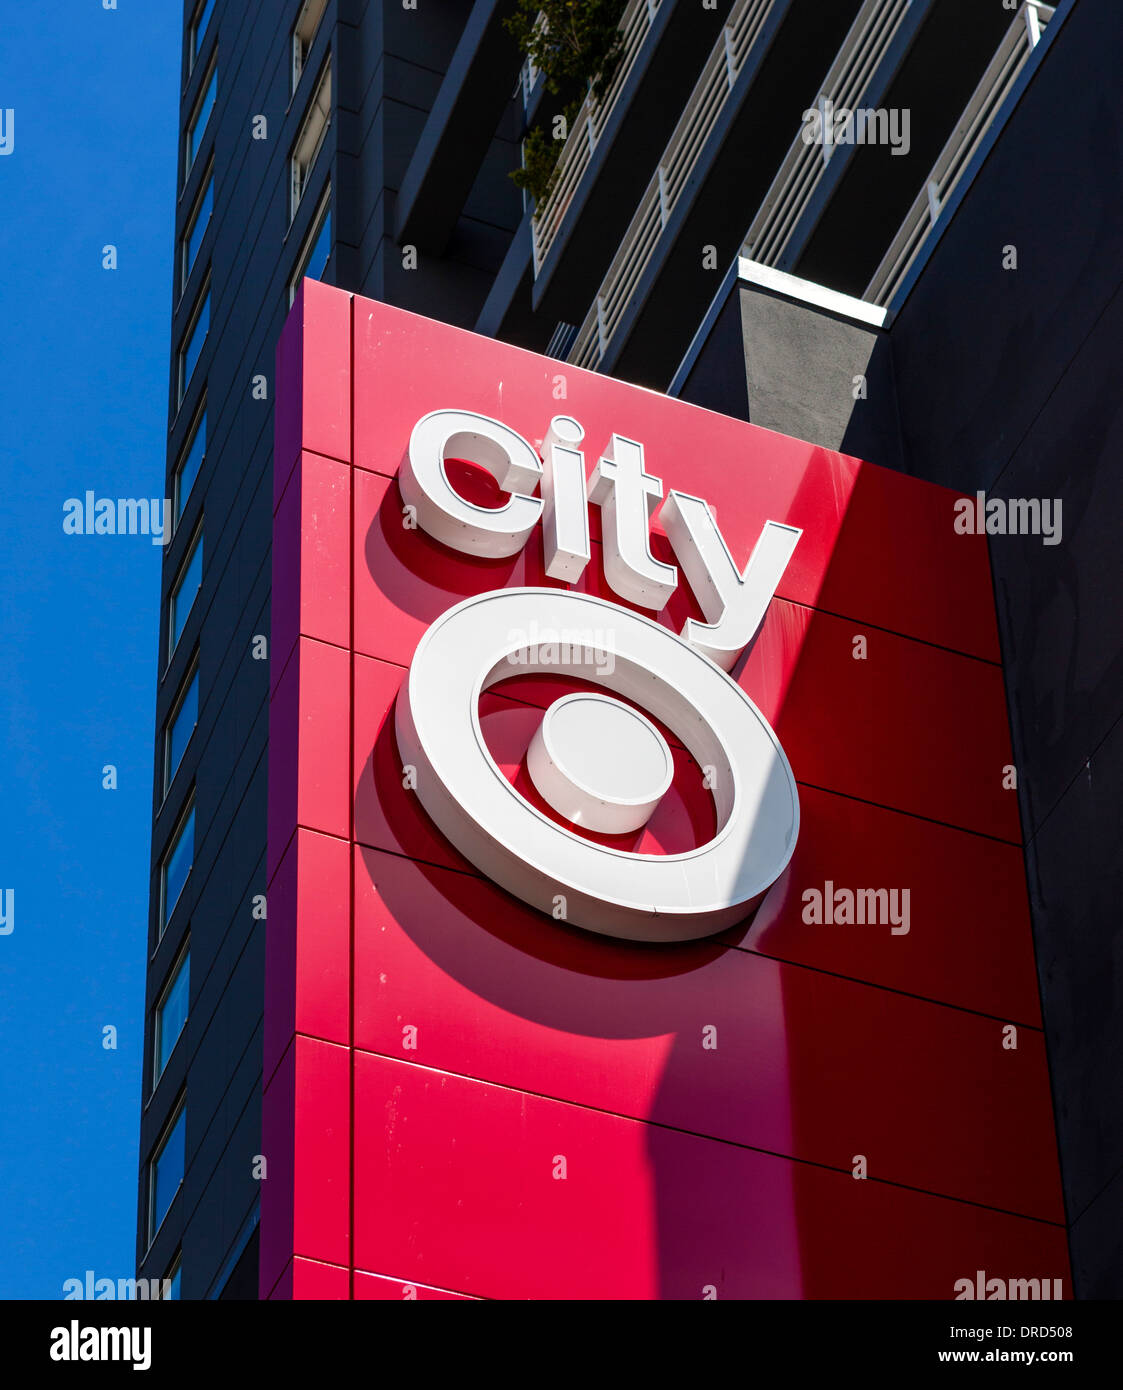 Target logo on the side of the City Target store on Pike Street in downtown Seattle, Washington, USA - Stock Image